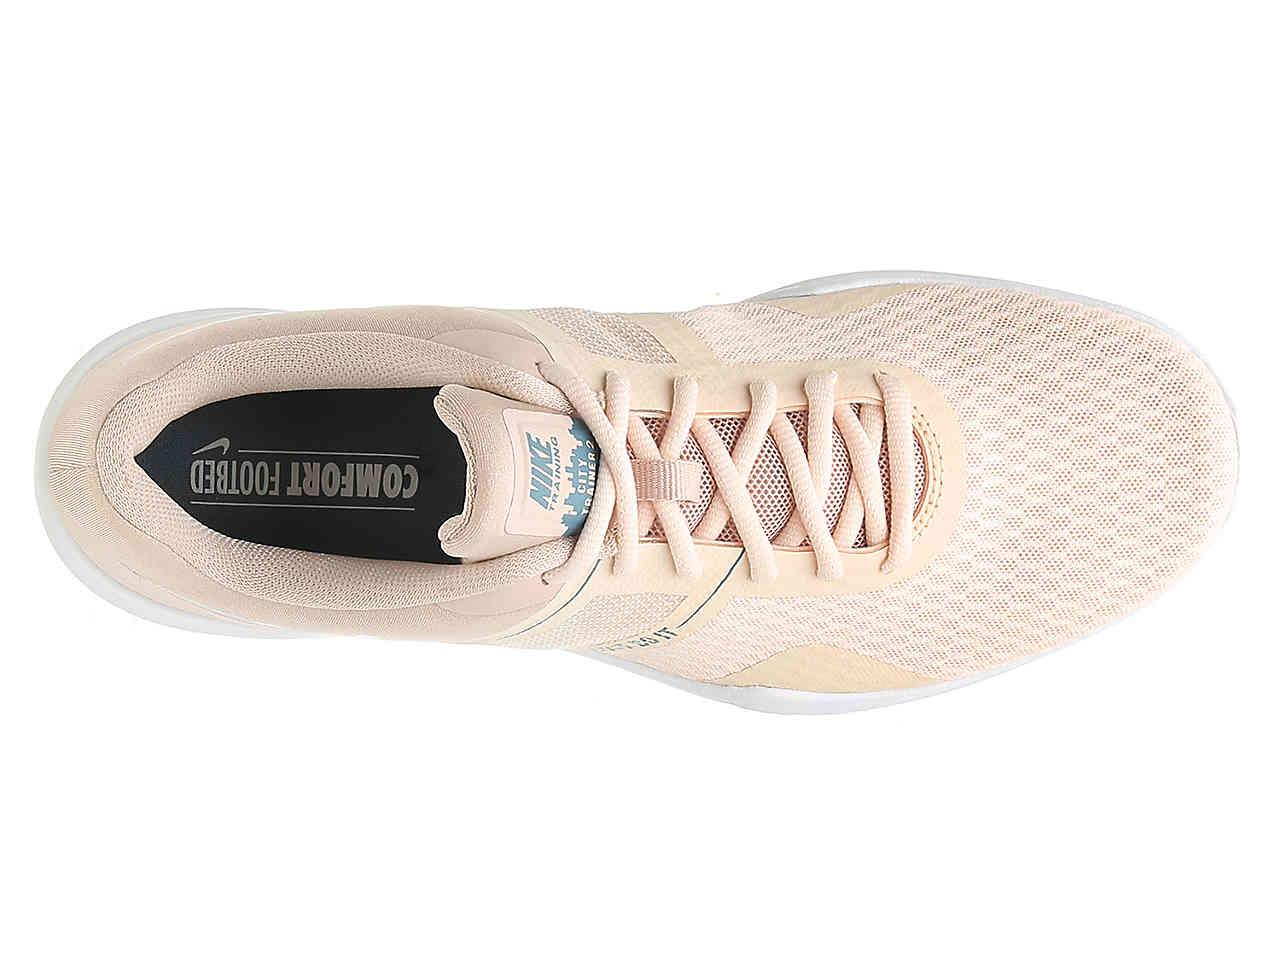 7452a9aa153 Lyst - Nike City Trainer 2 Lightweight Training Shoe in Pink